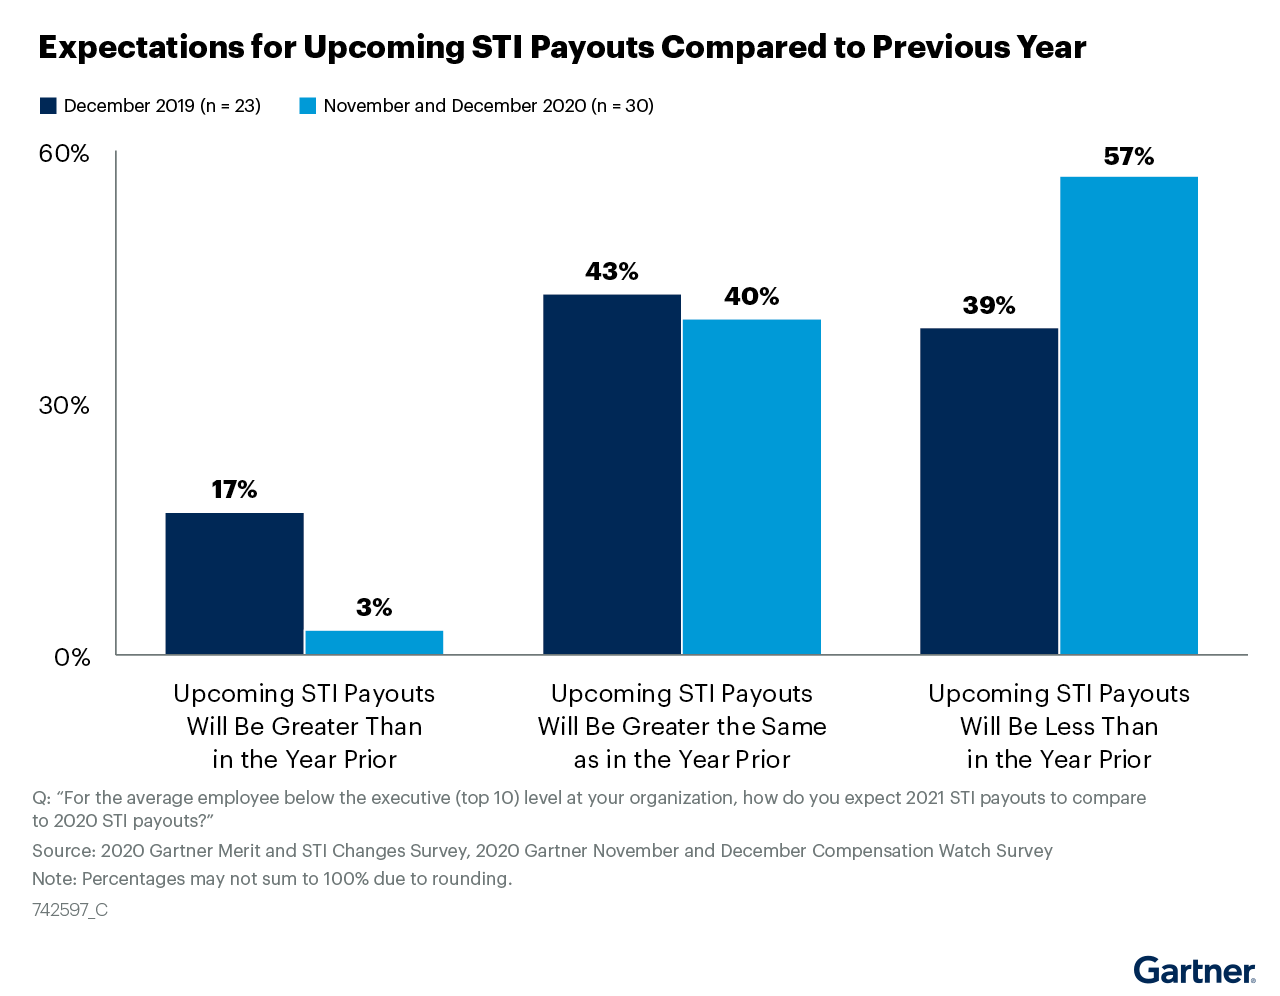 Figure 9: Expectations for Upcoming STI Payouts Compared to Previous Year